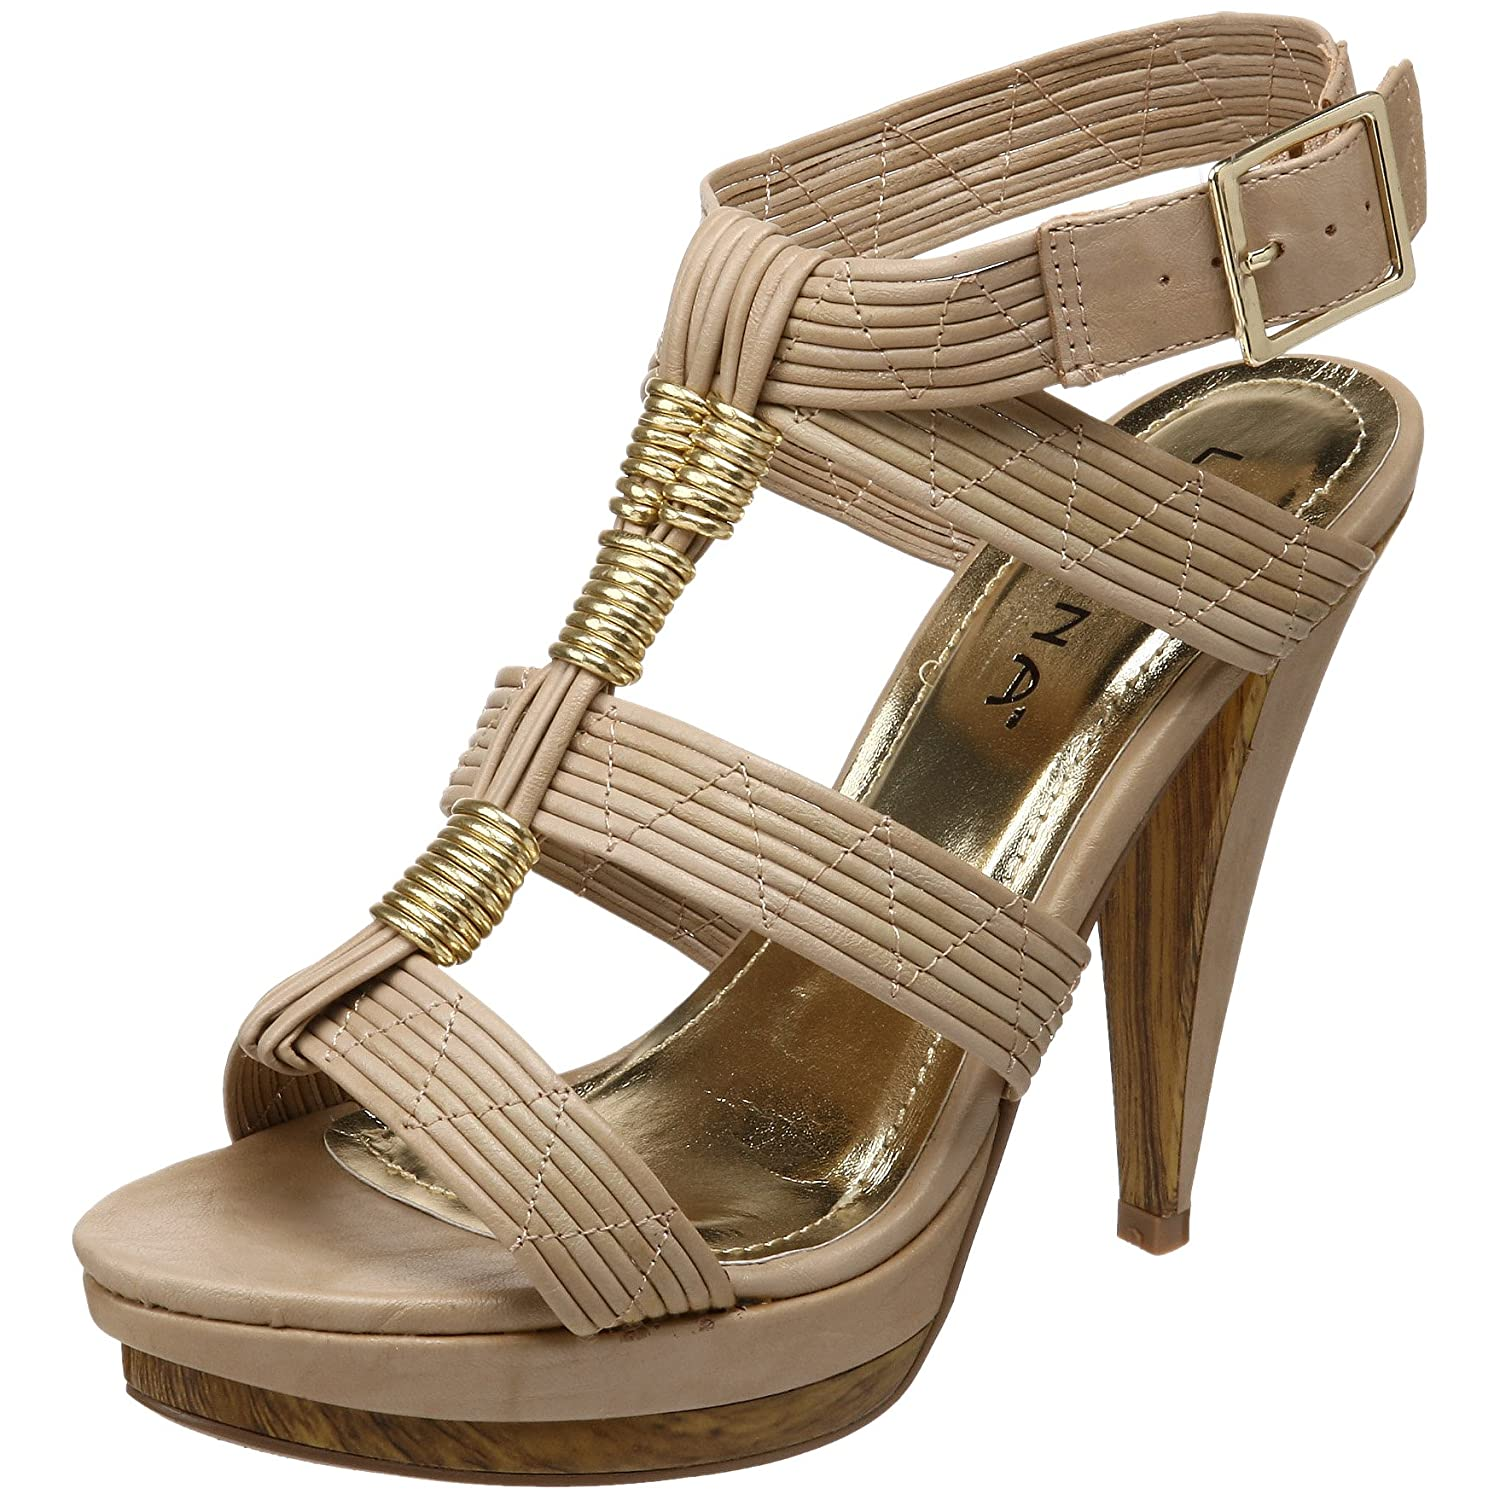 Liliana - Pagona-1 Platform Sandal